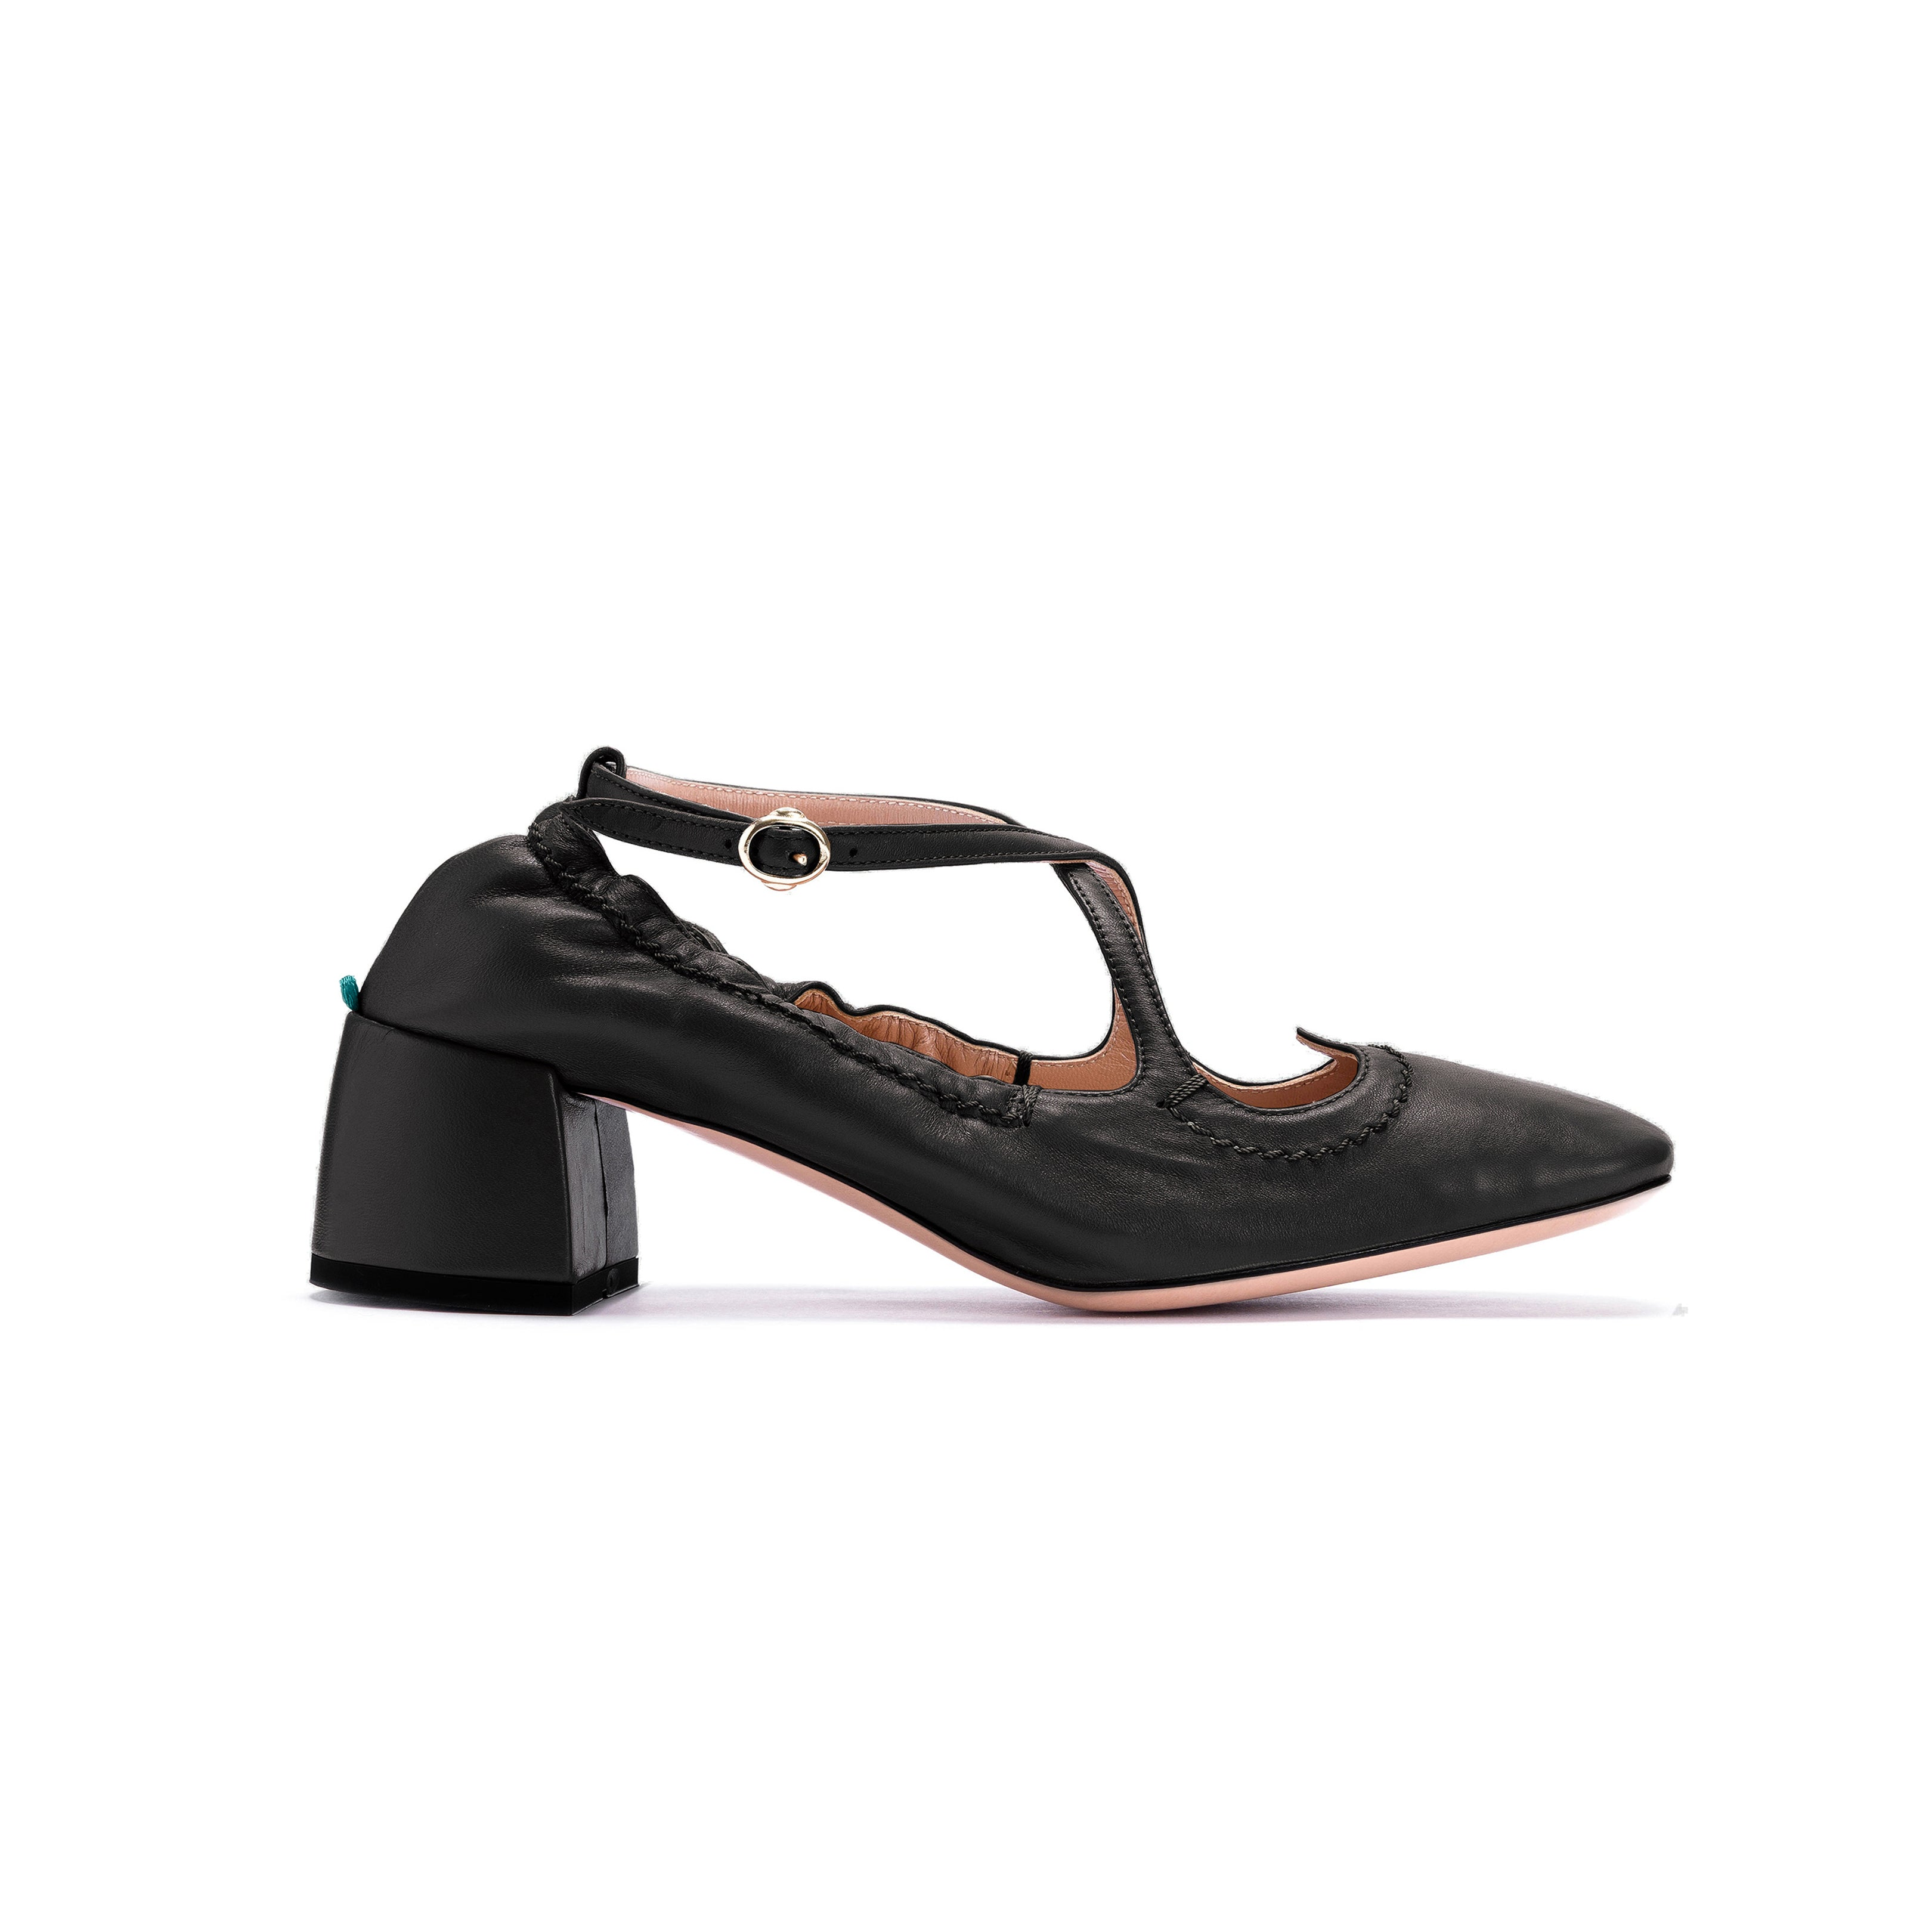 Pump Two for Love a sacchetto in nappa color nero